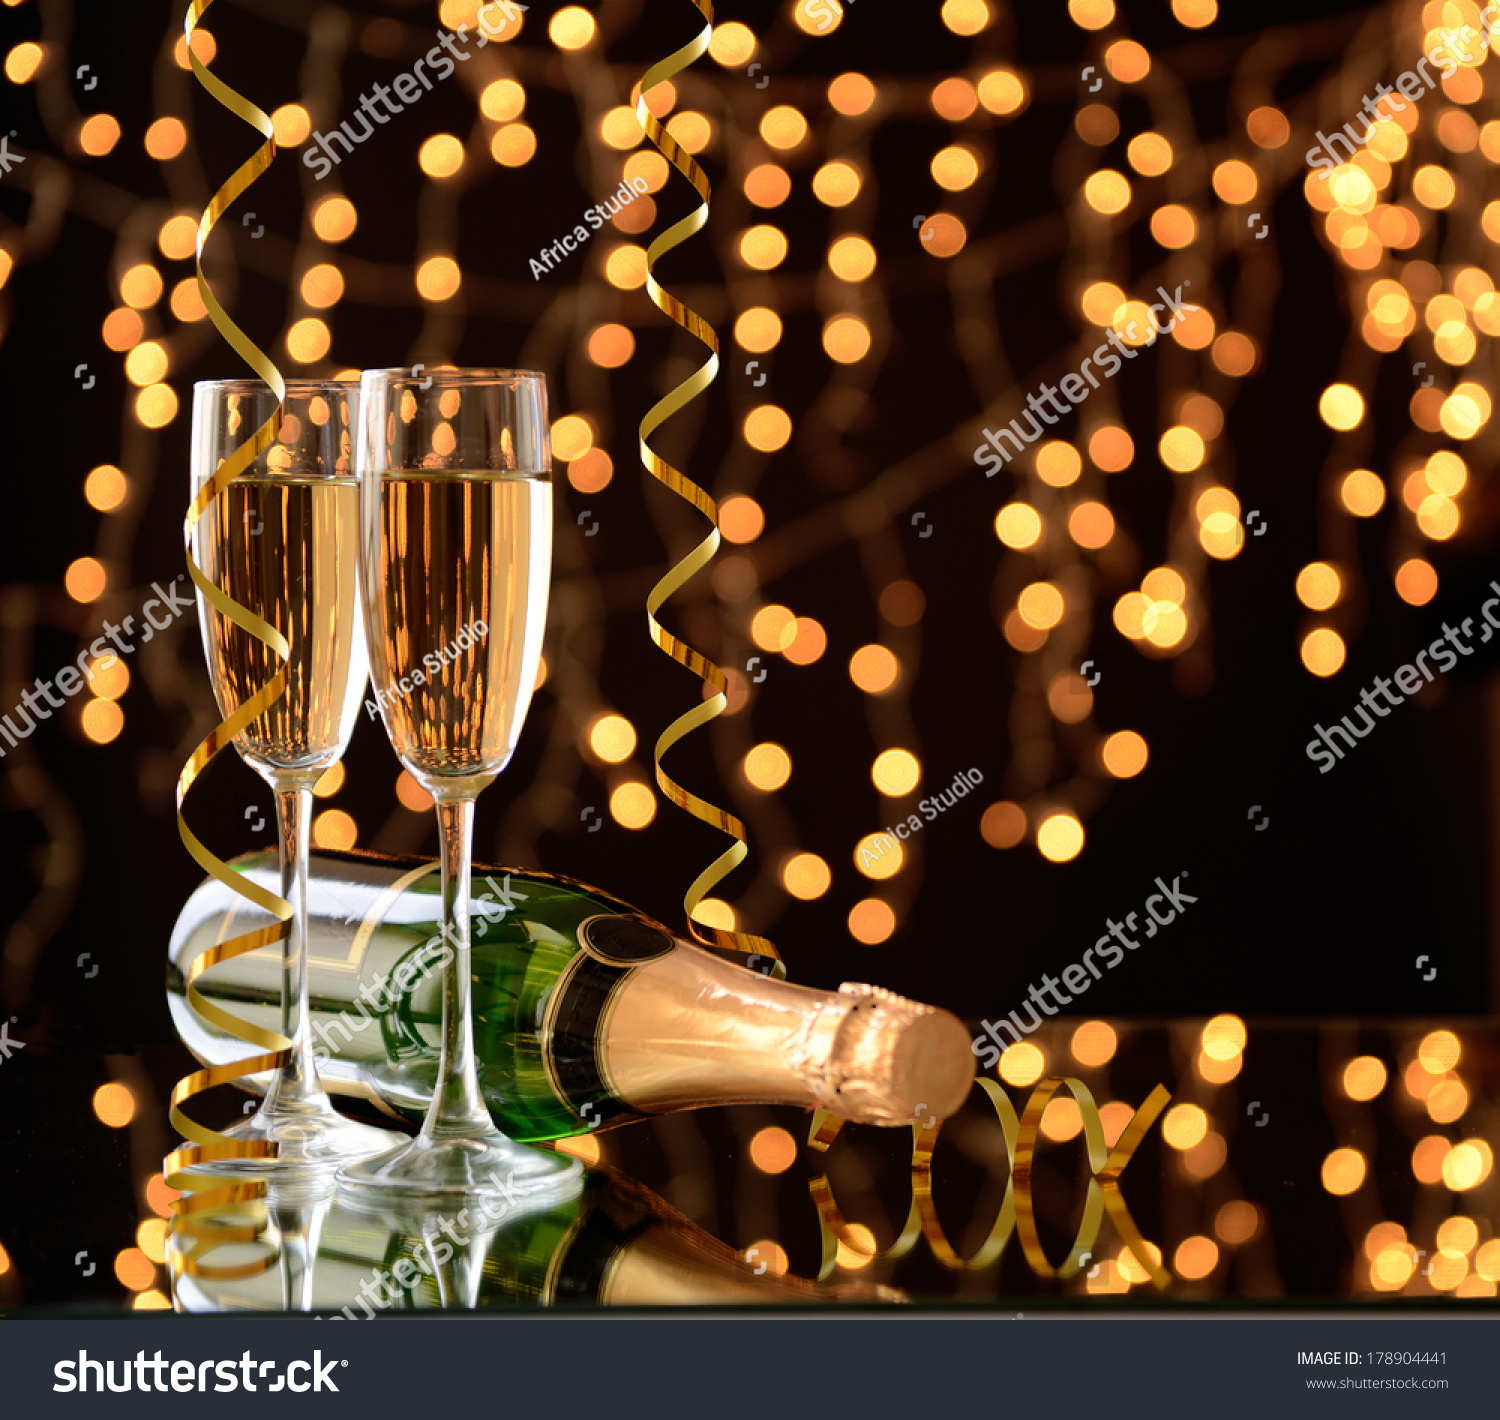 Glasses and bottle of champagne on shiny background #178904441